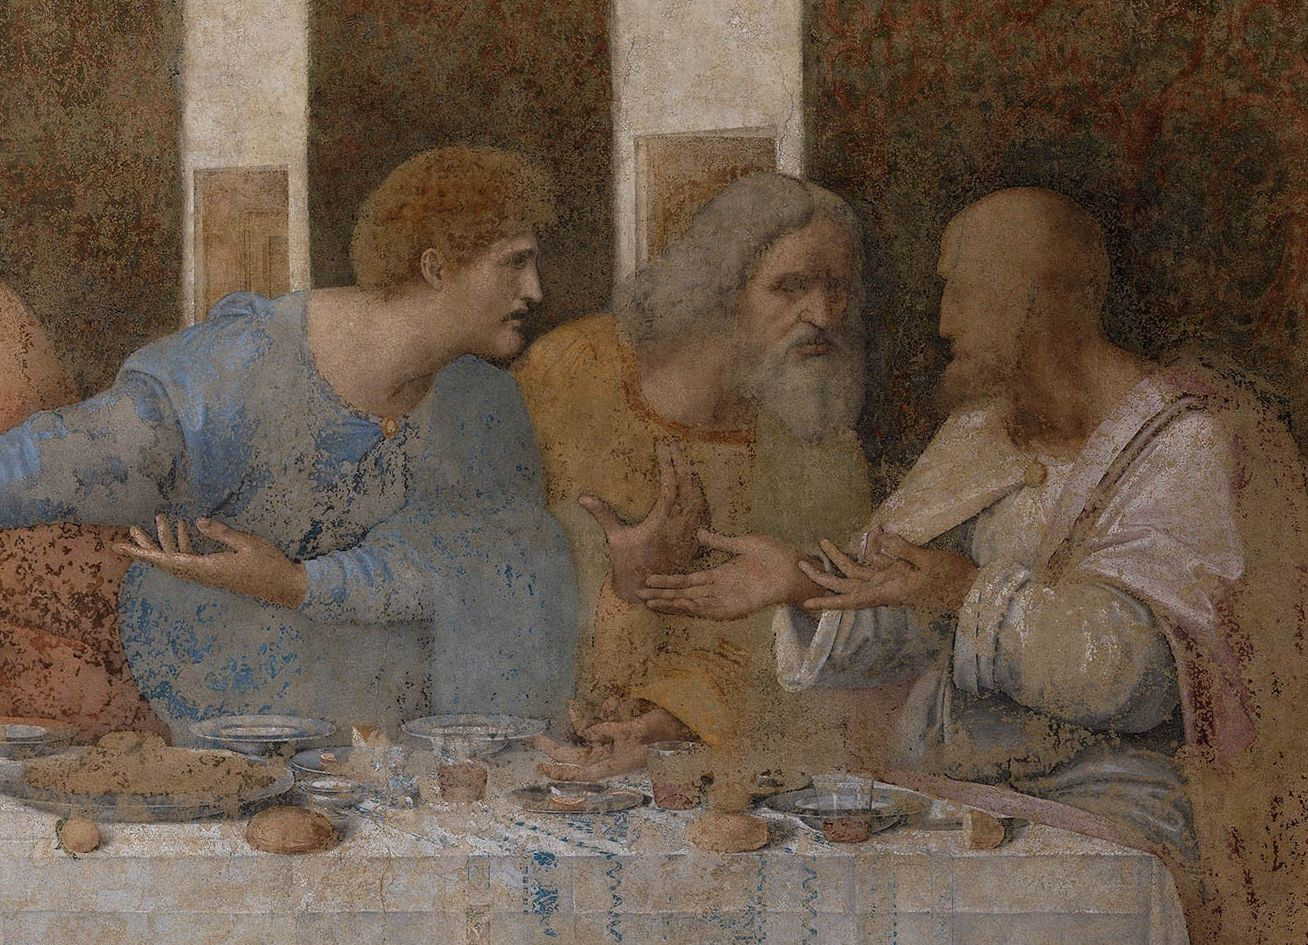 What is actually depicted on The Last Supper by Leonardo da Vinci?